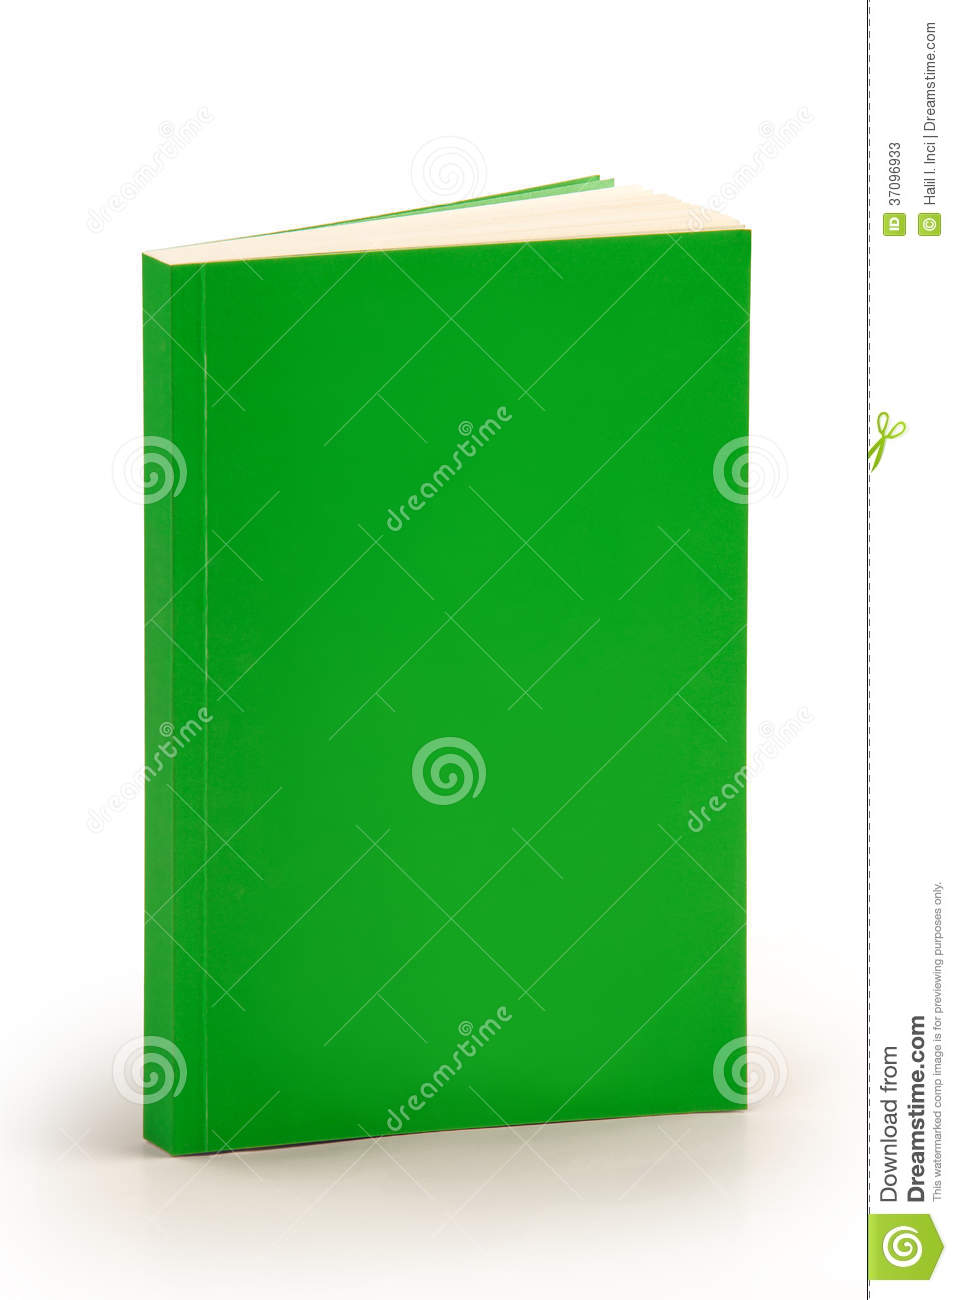 Cookbook With Green Cover : Blank green book cover with clipping path stock photos